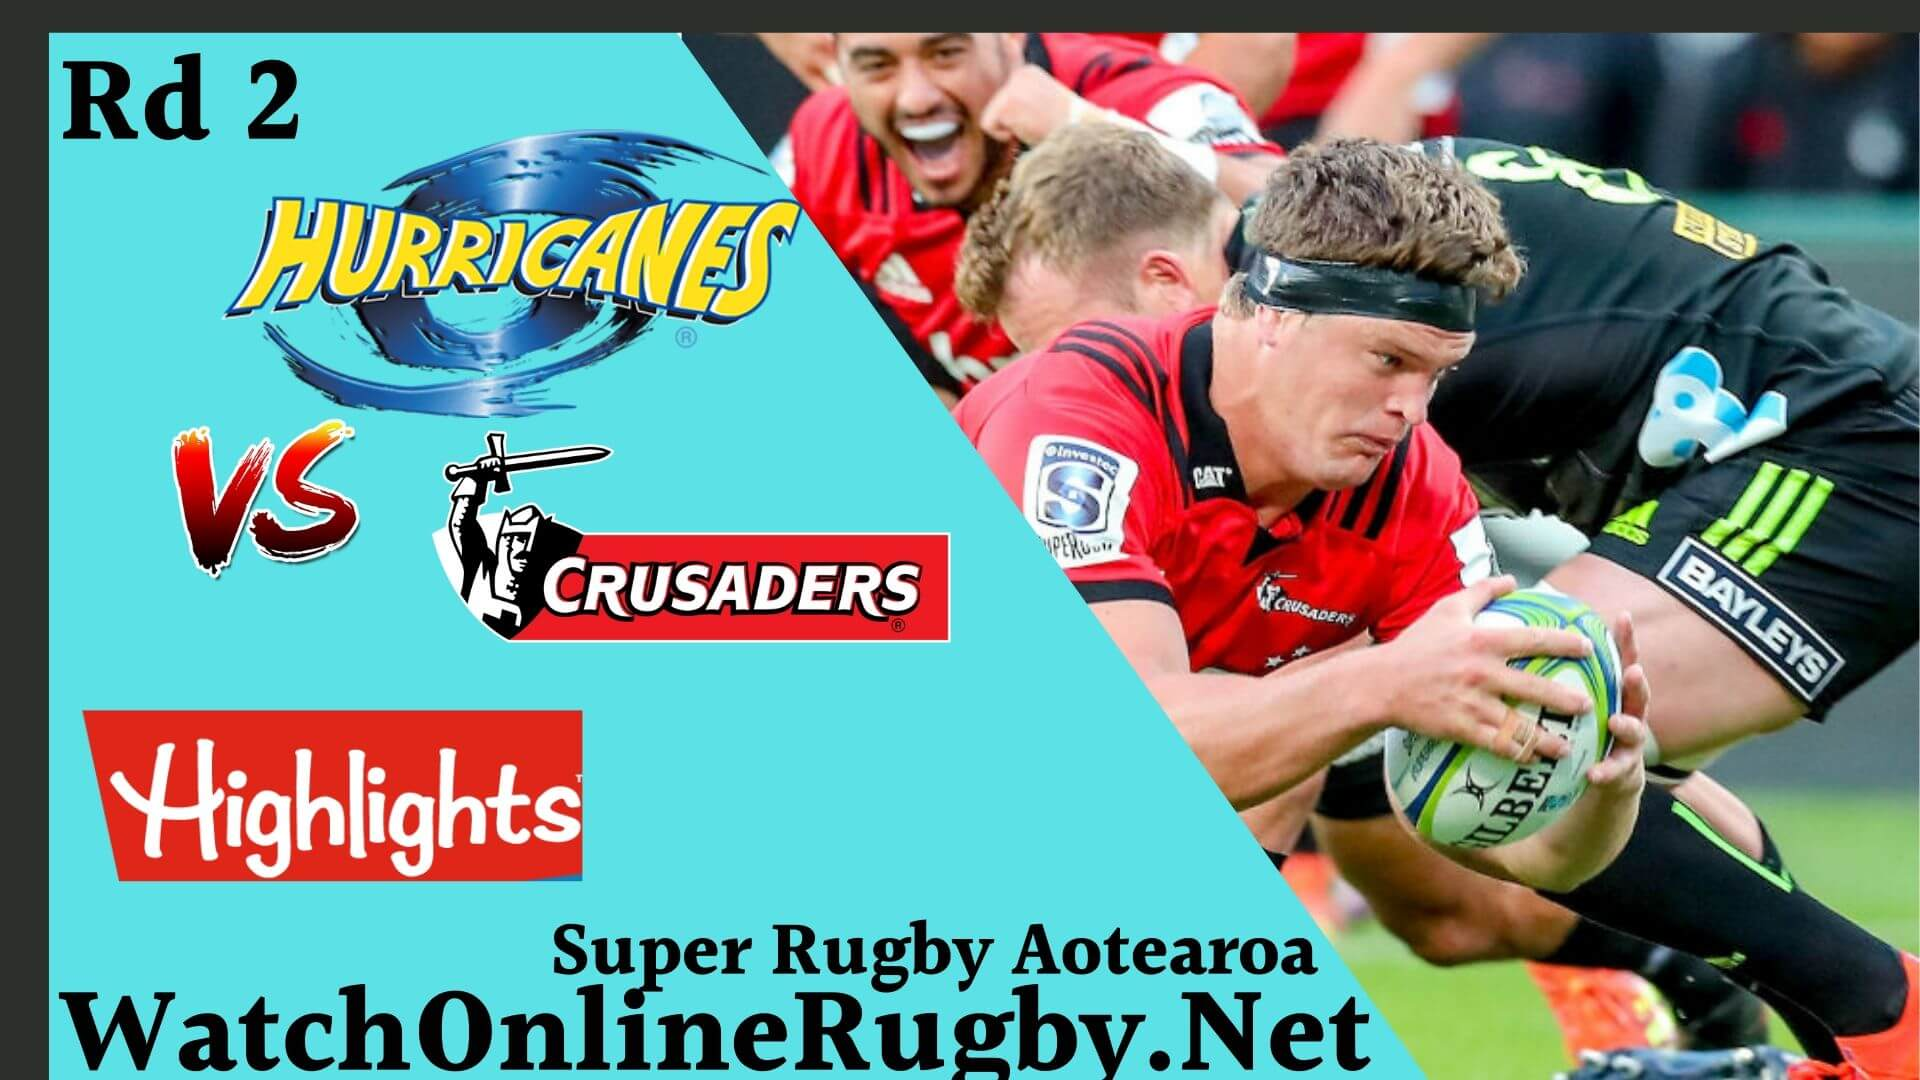 Crusaders Vs Hurricanes Highlights Rd 2 Super Rugby Aotearoa